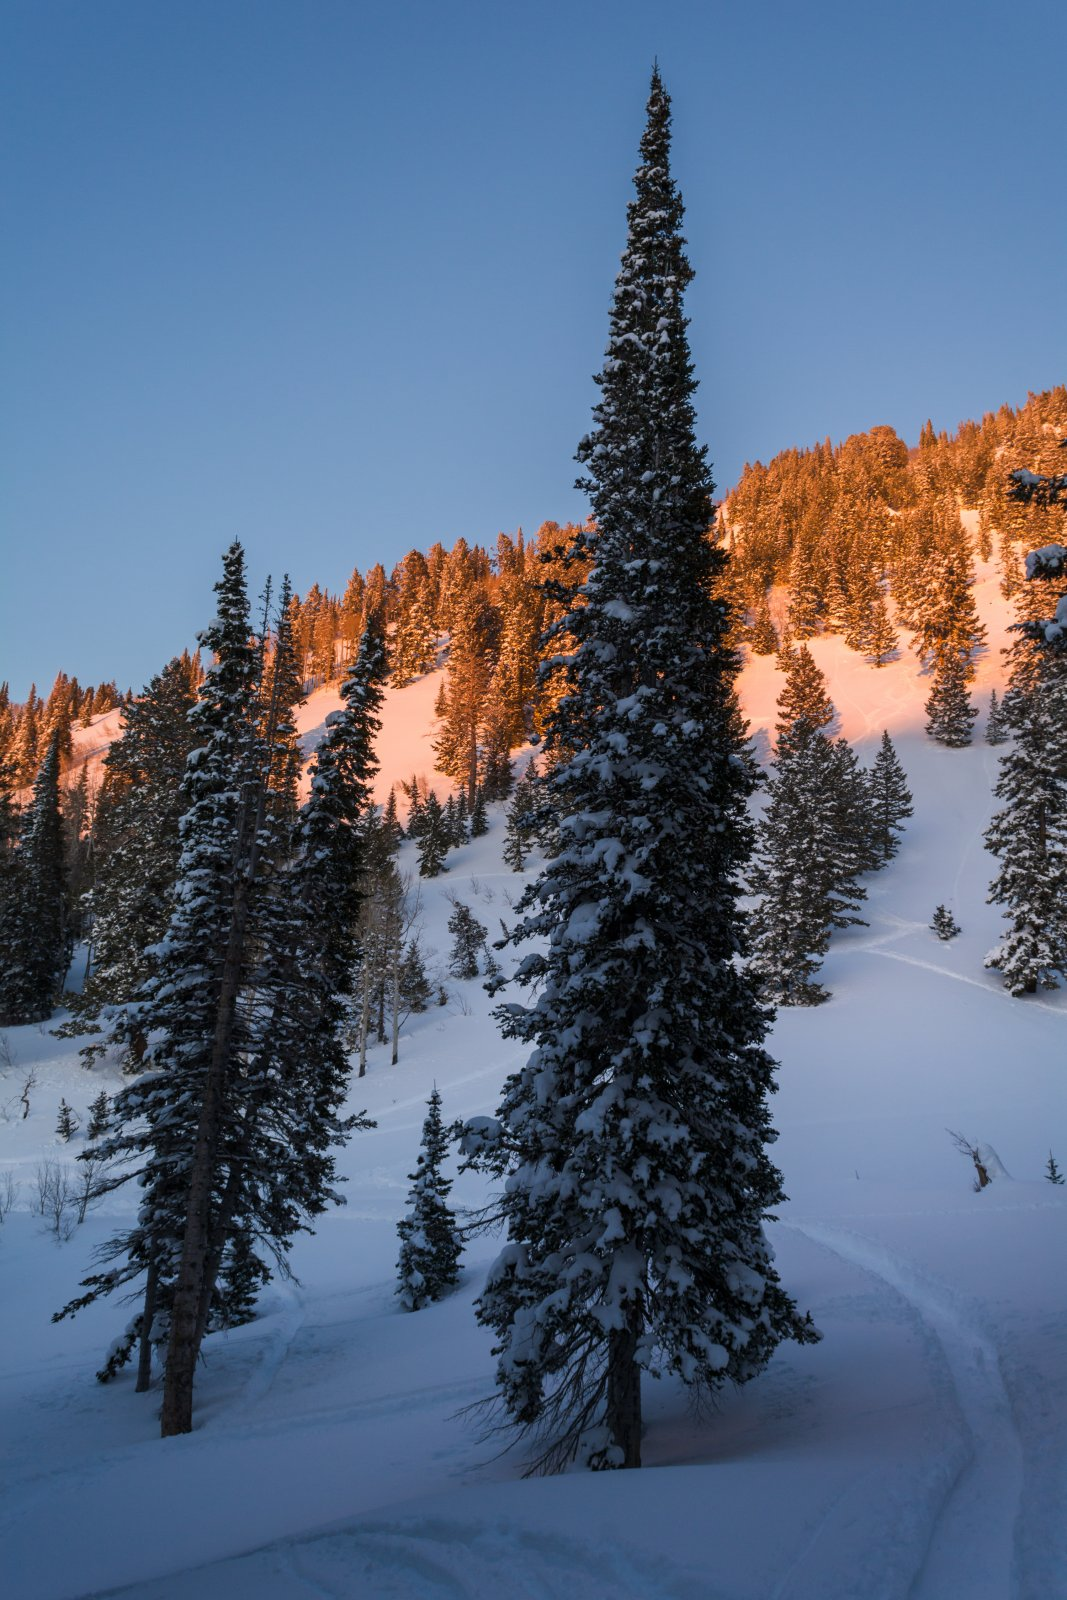 Snowshoeing With Ade0224-sm.jpg